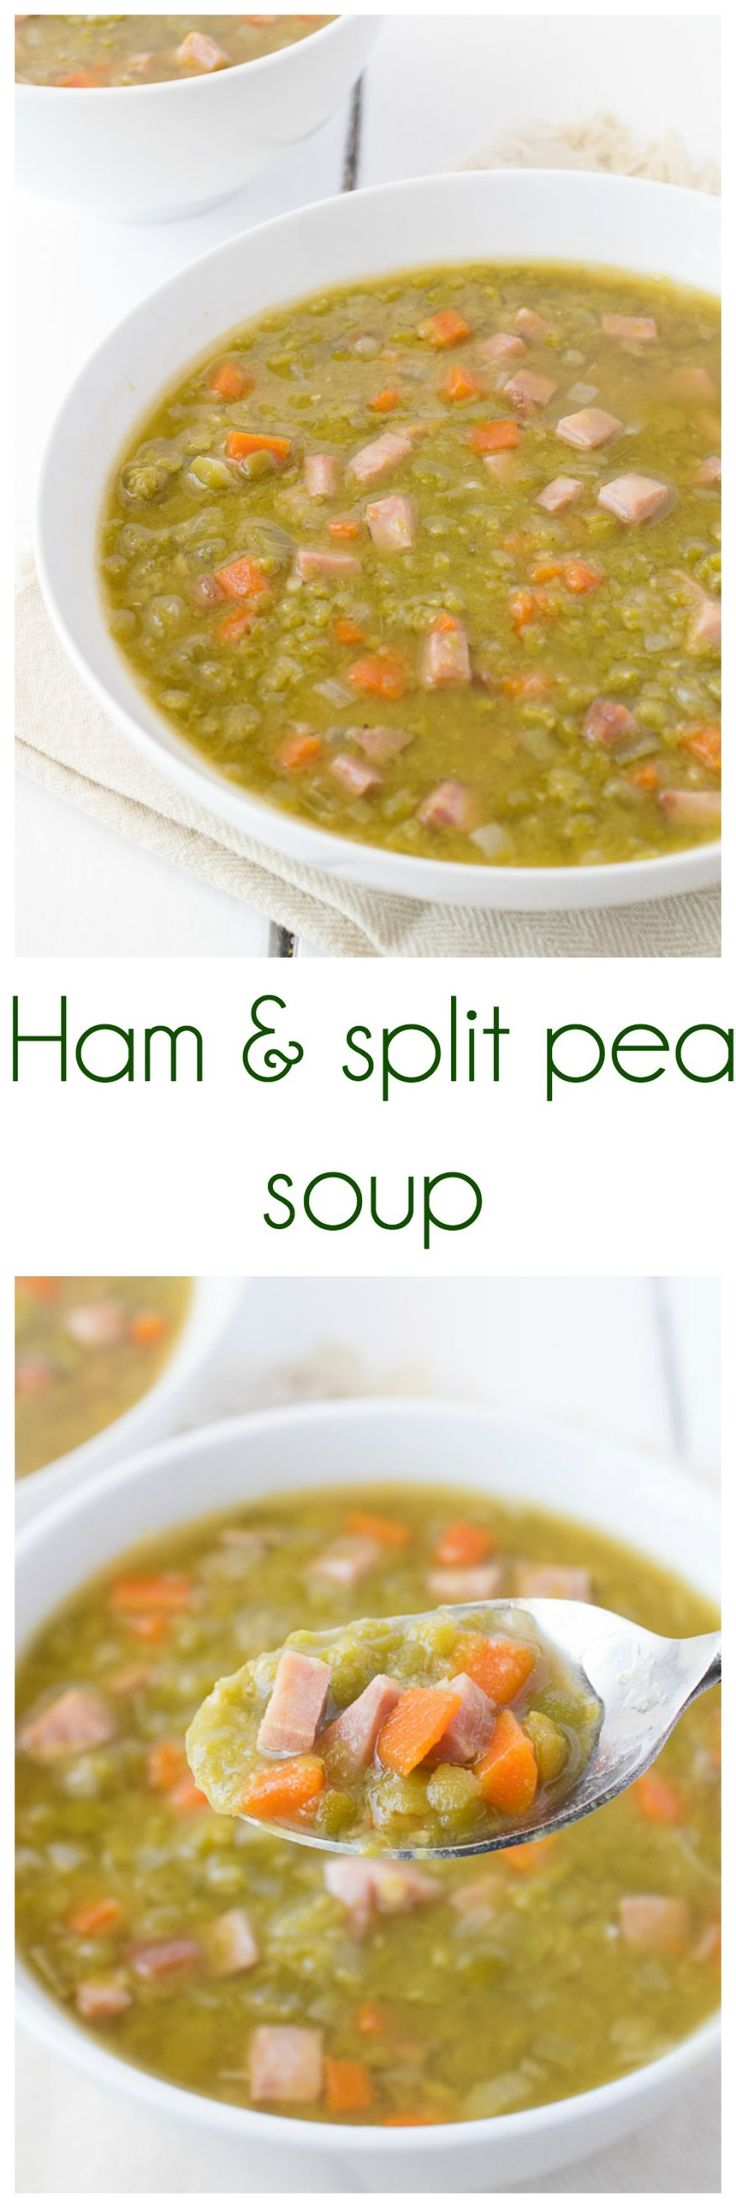 Ham & split pea soup. A great use of leftover ham and is so easy to make with a slow cooked ...